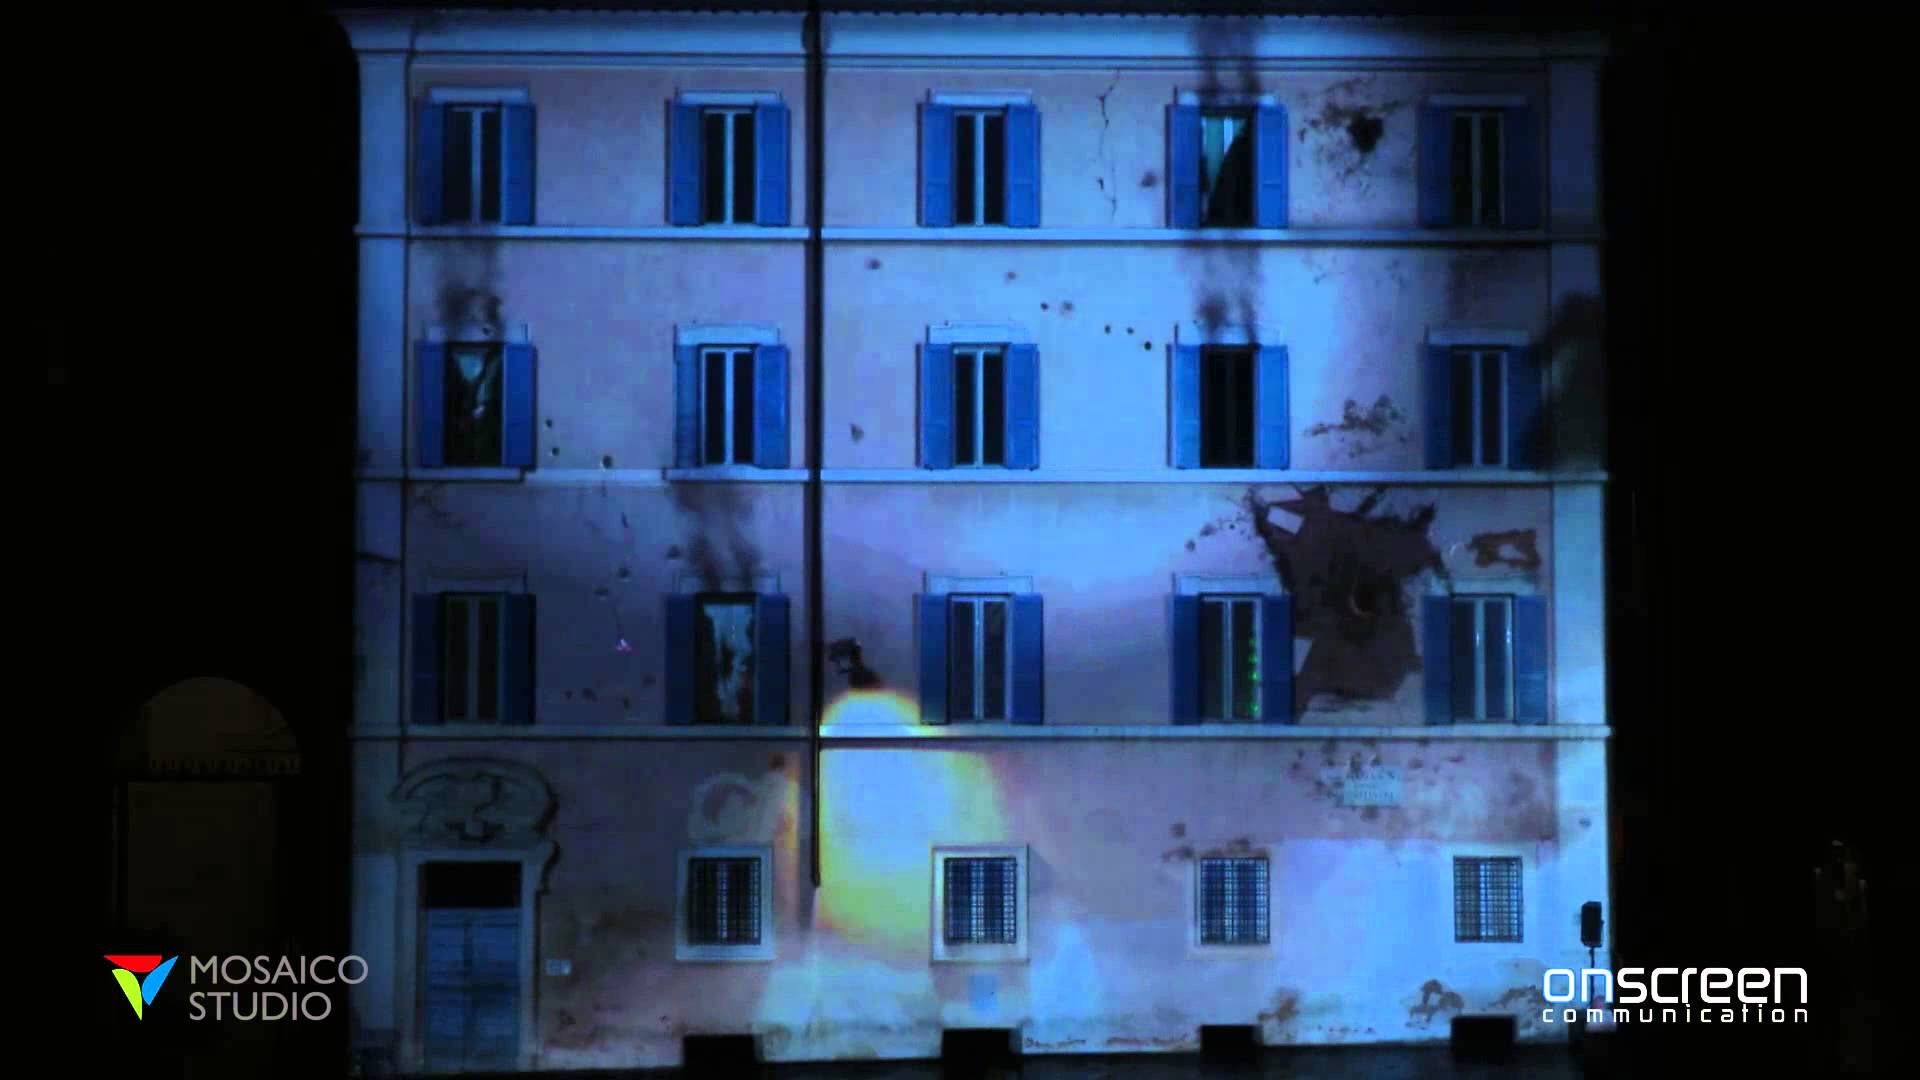 One of OnScreen projects in Piazza Santa Maria in Trastevere, Rome